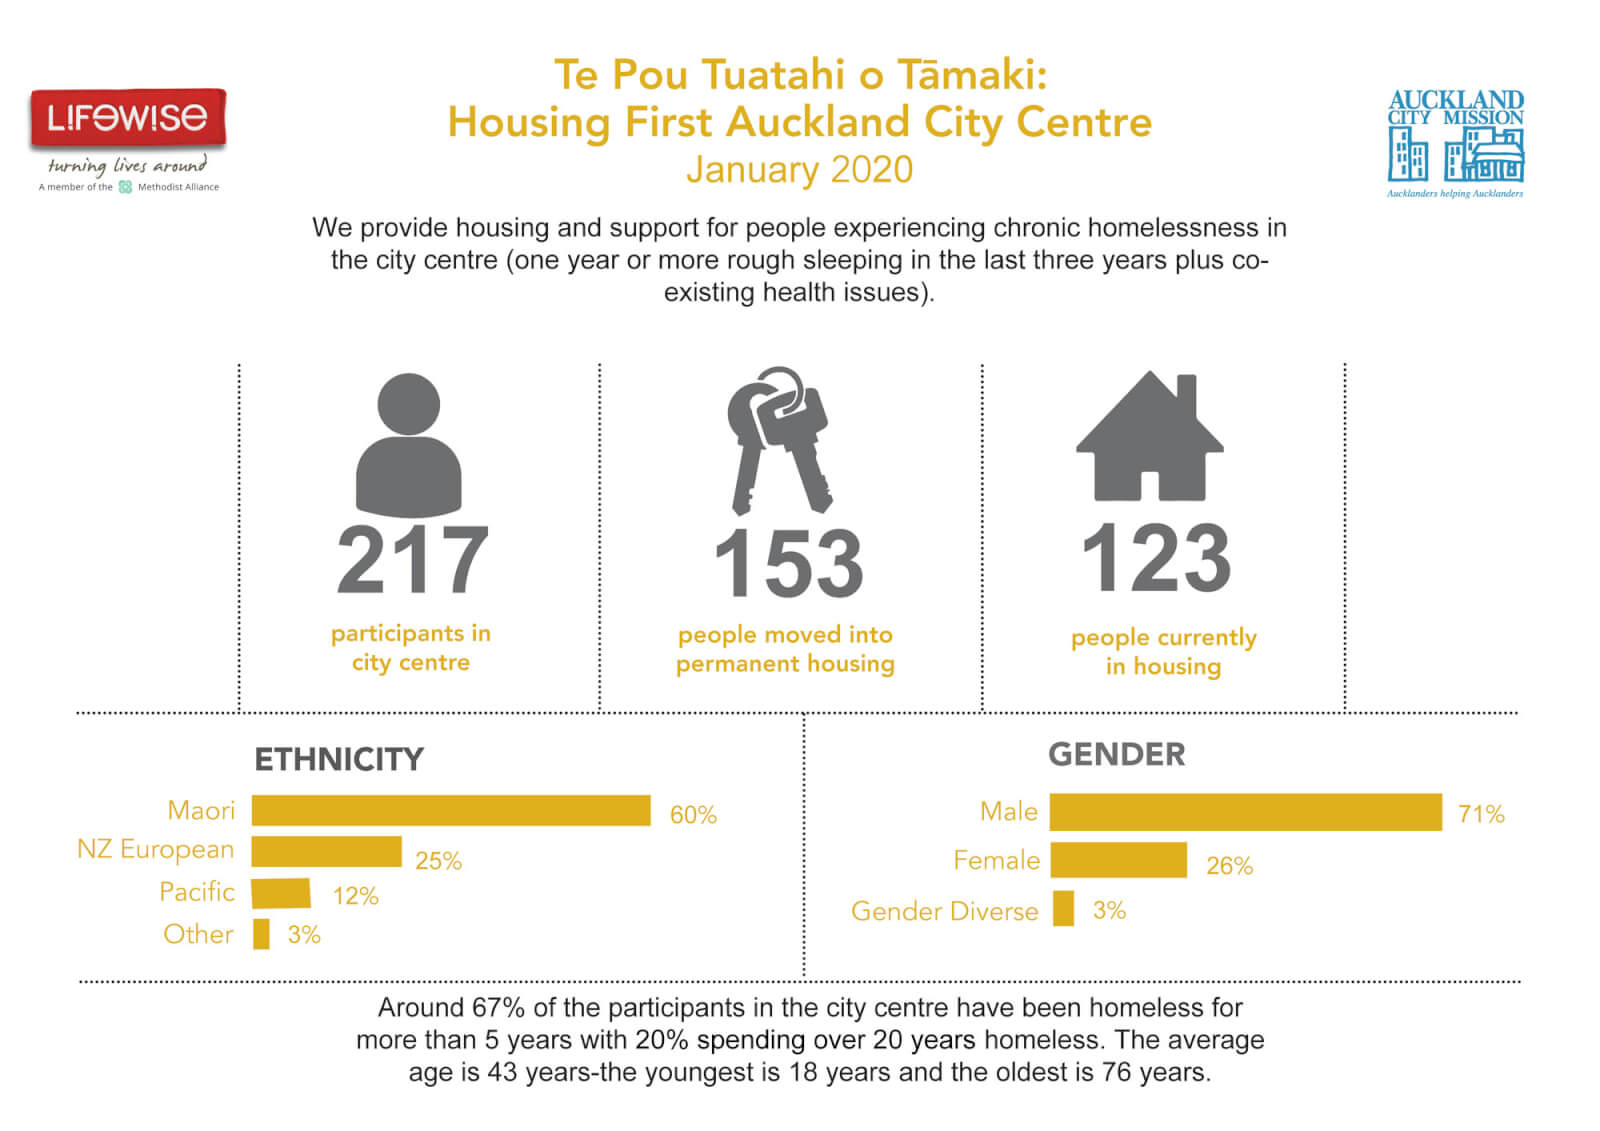 Te Pou Tuatahi o Tāmaki: Housing First Auckland City Centre January 2020: We provide housing and support for people experiencing chronic homelessness in the city centre (one year or more rough sleeping or at least four episodes of homelessness in the past three years plus co-existing health issues).